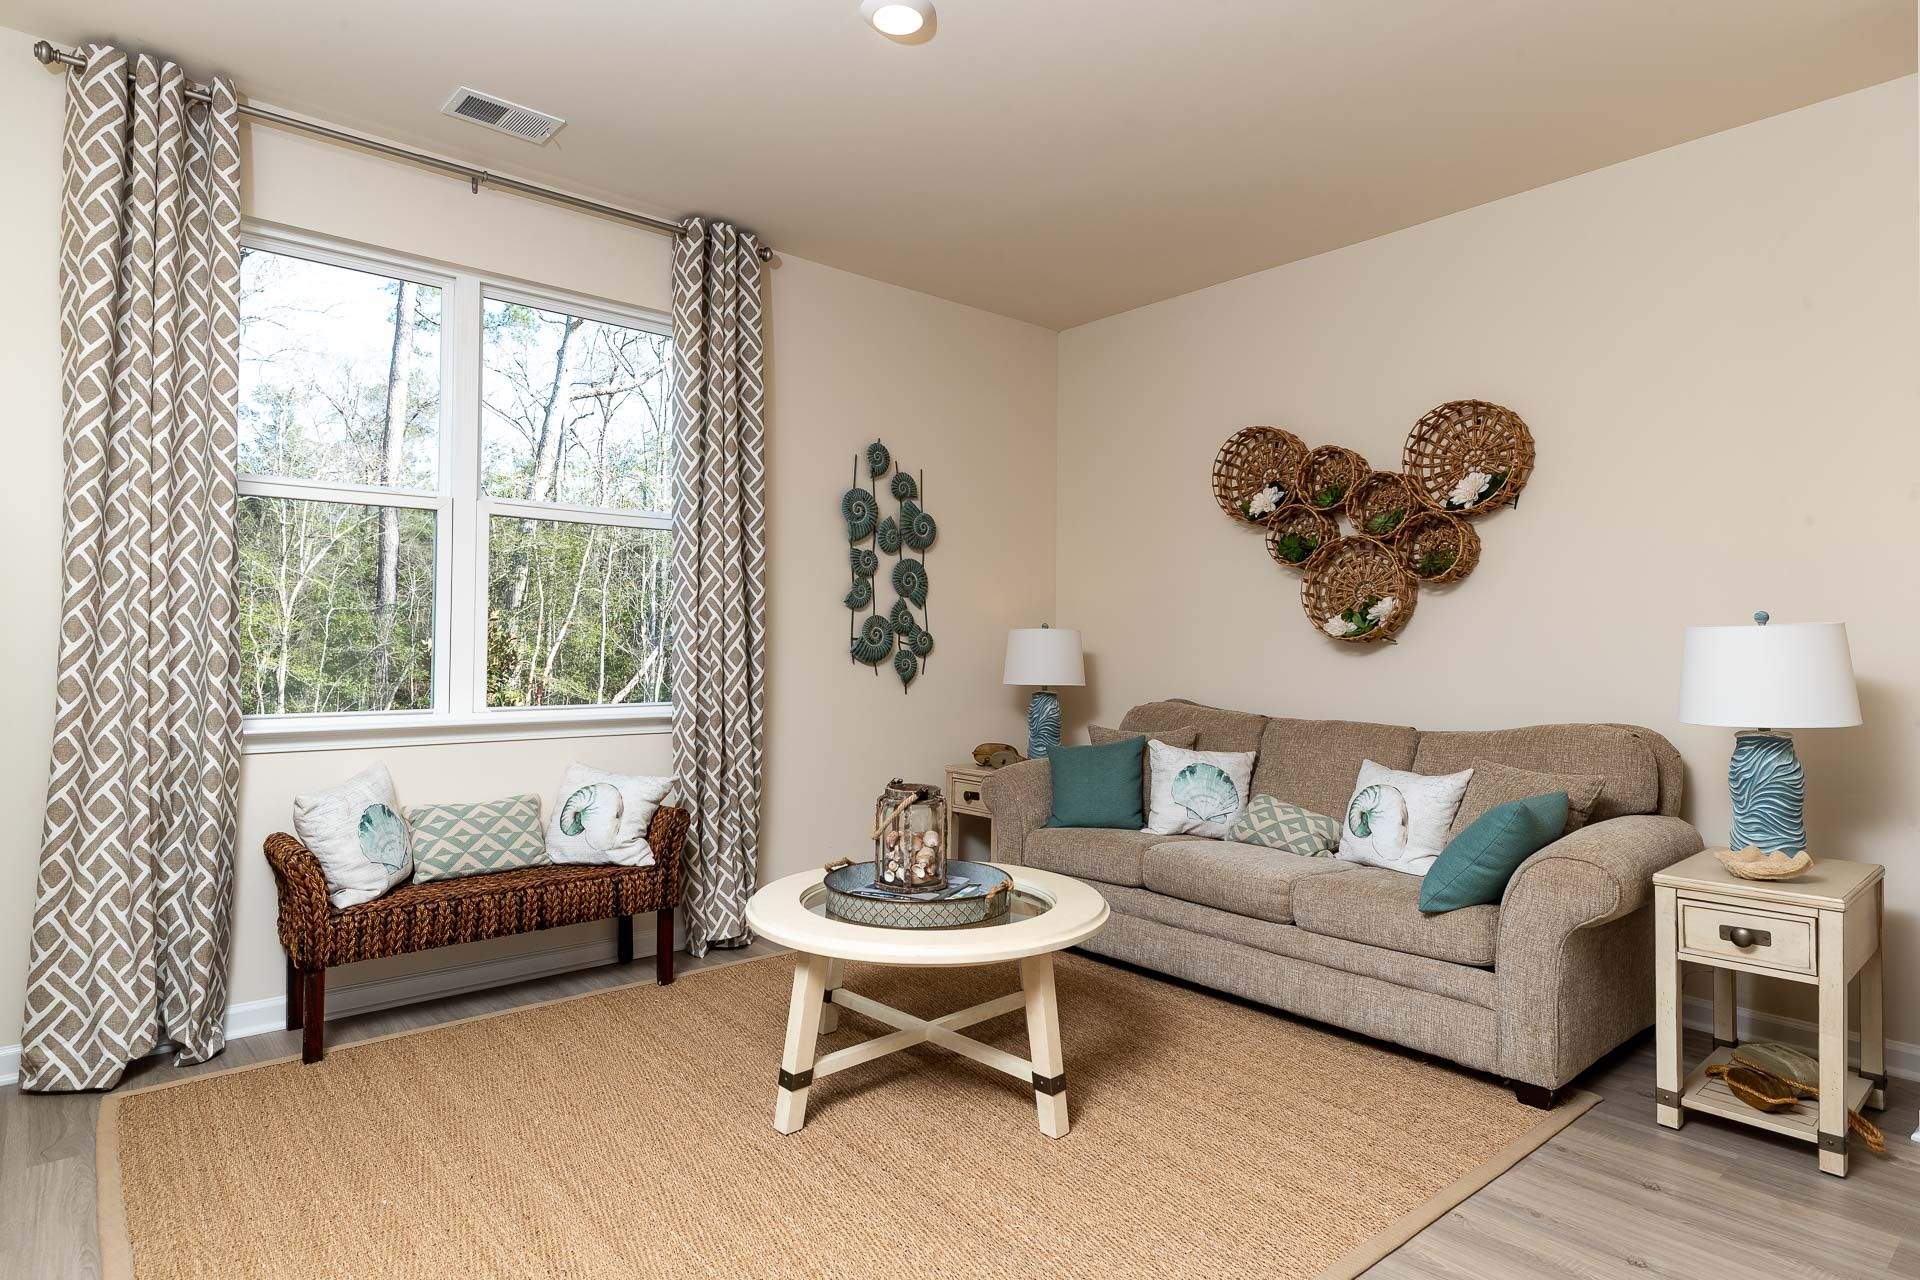 Living Area featured in the CALI By D.R. Horton in Myrtle Beach, SC